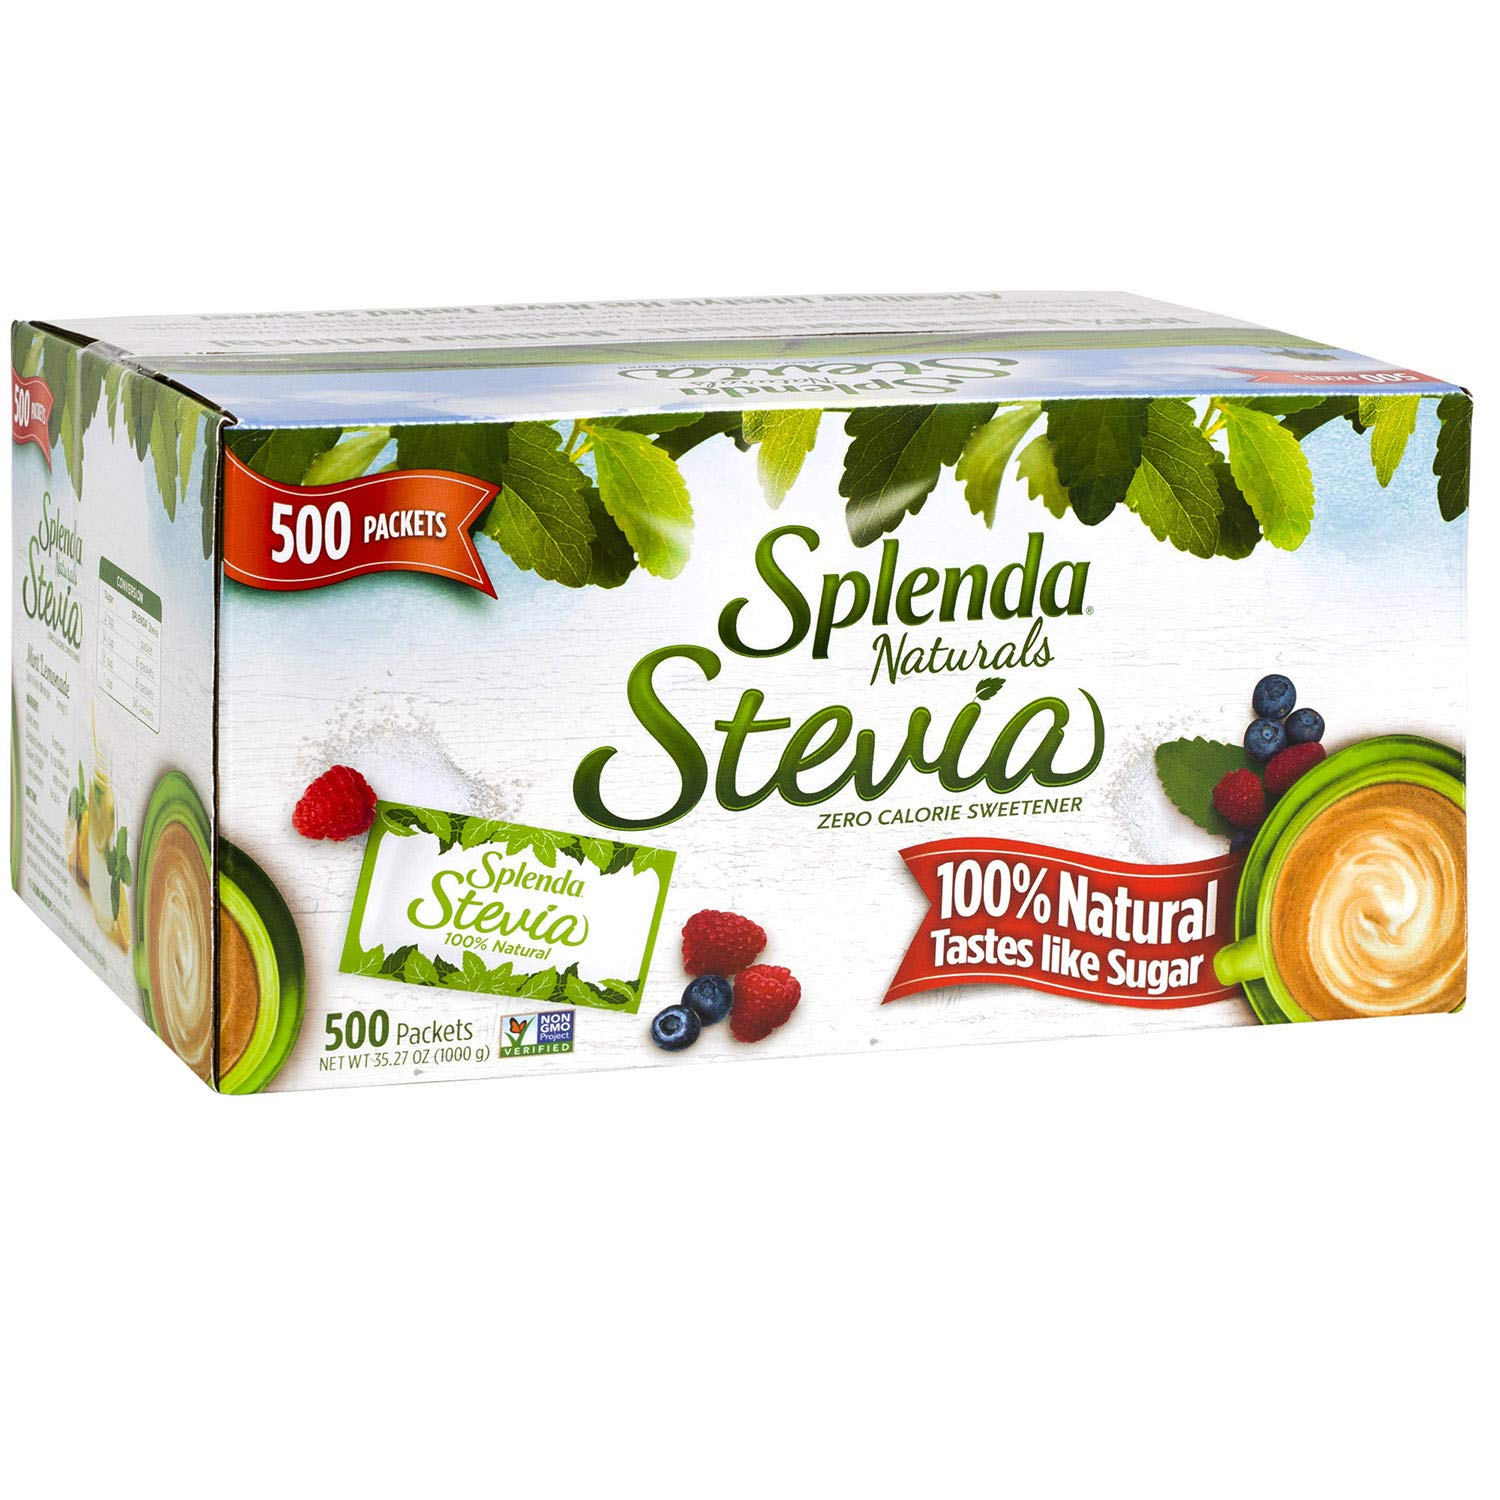 SPLENDA Naturals Stevia Sweetener: No Calorie, All Natural Sugar Substitute w/ No Bitter Aftertaste. Single Serve Granulated Packets (500 Count)